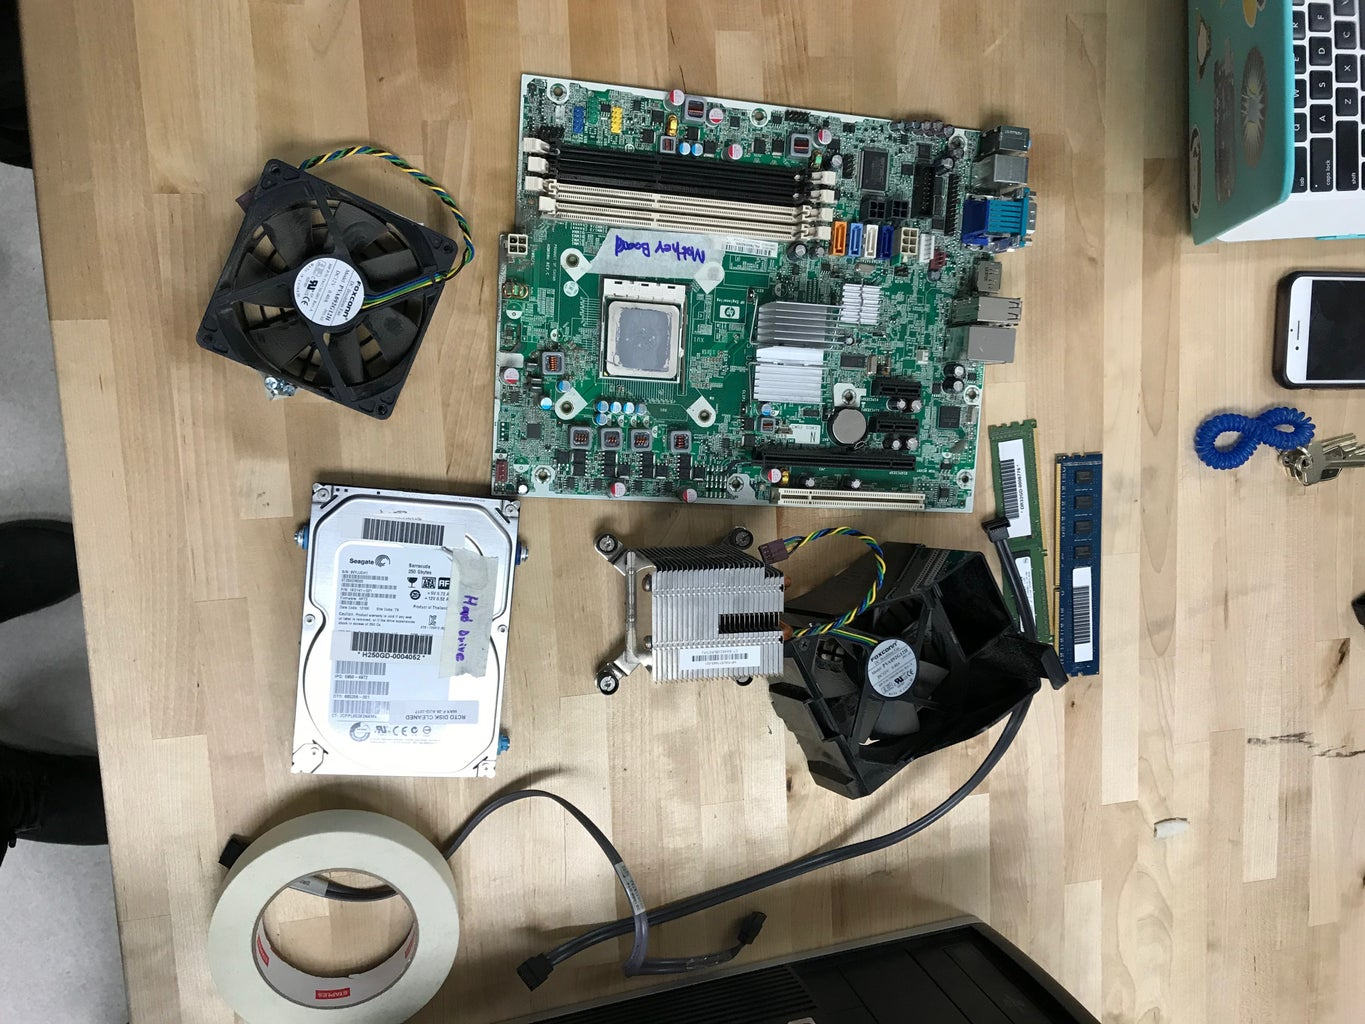 Install the Optical Drive